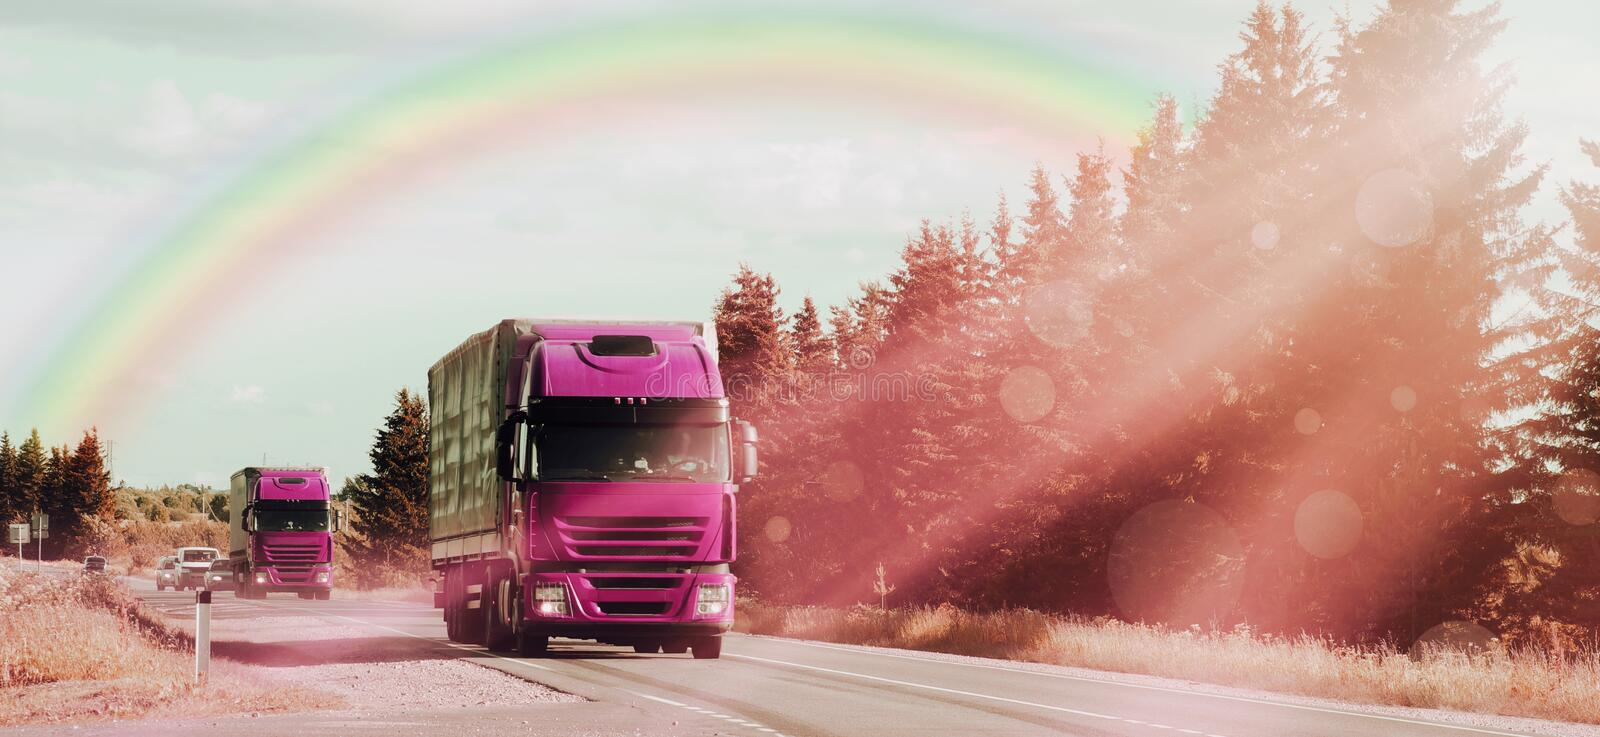 Shipping two red cargo trucks on the road being driven sun rays rainbow royalty free stock photography